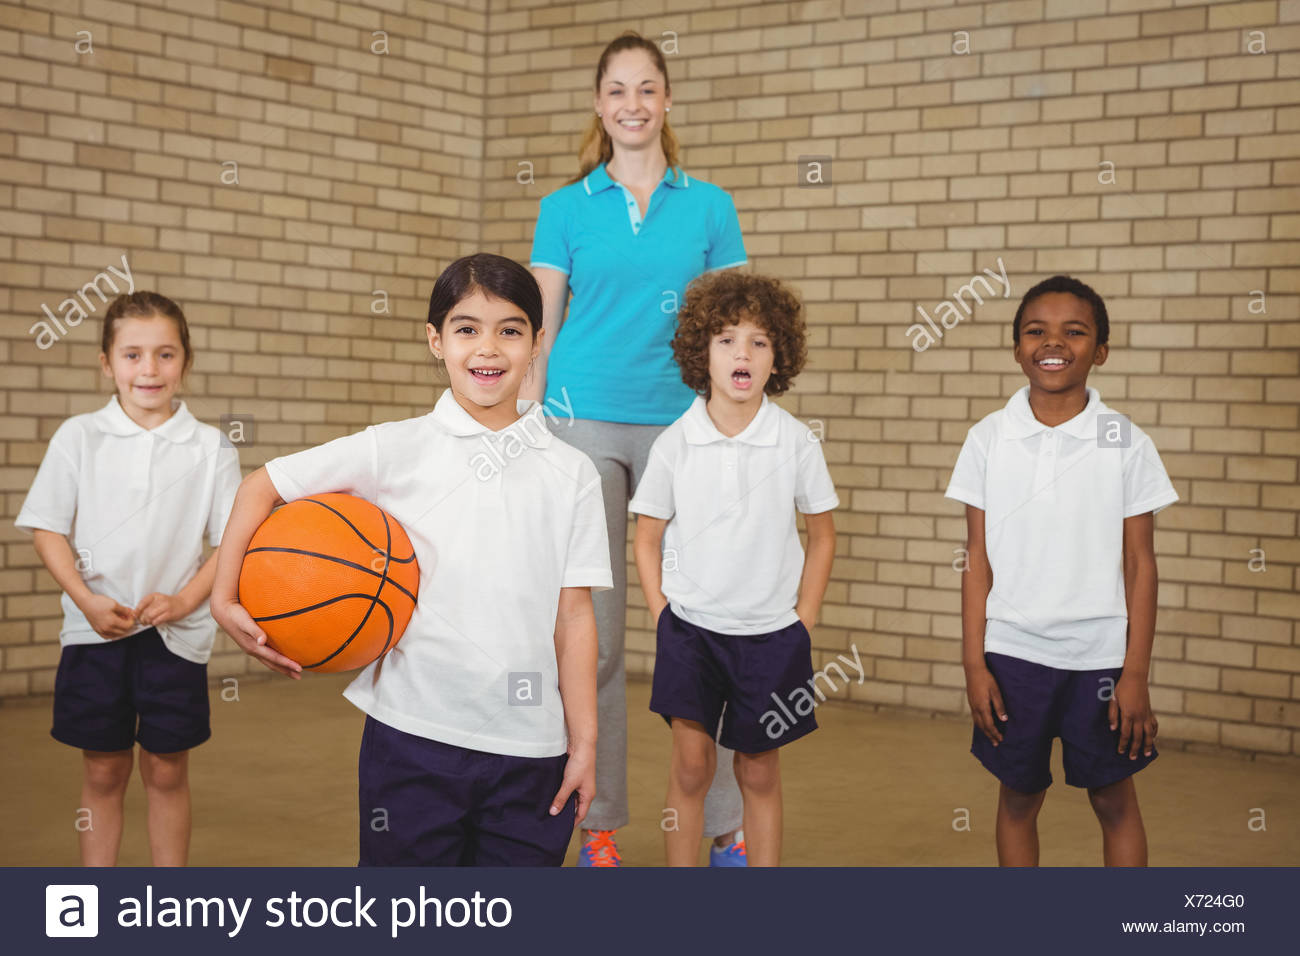 Students together about to play basketball - Stock Image